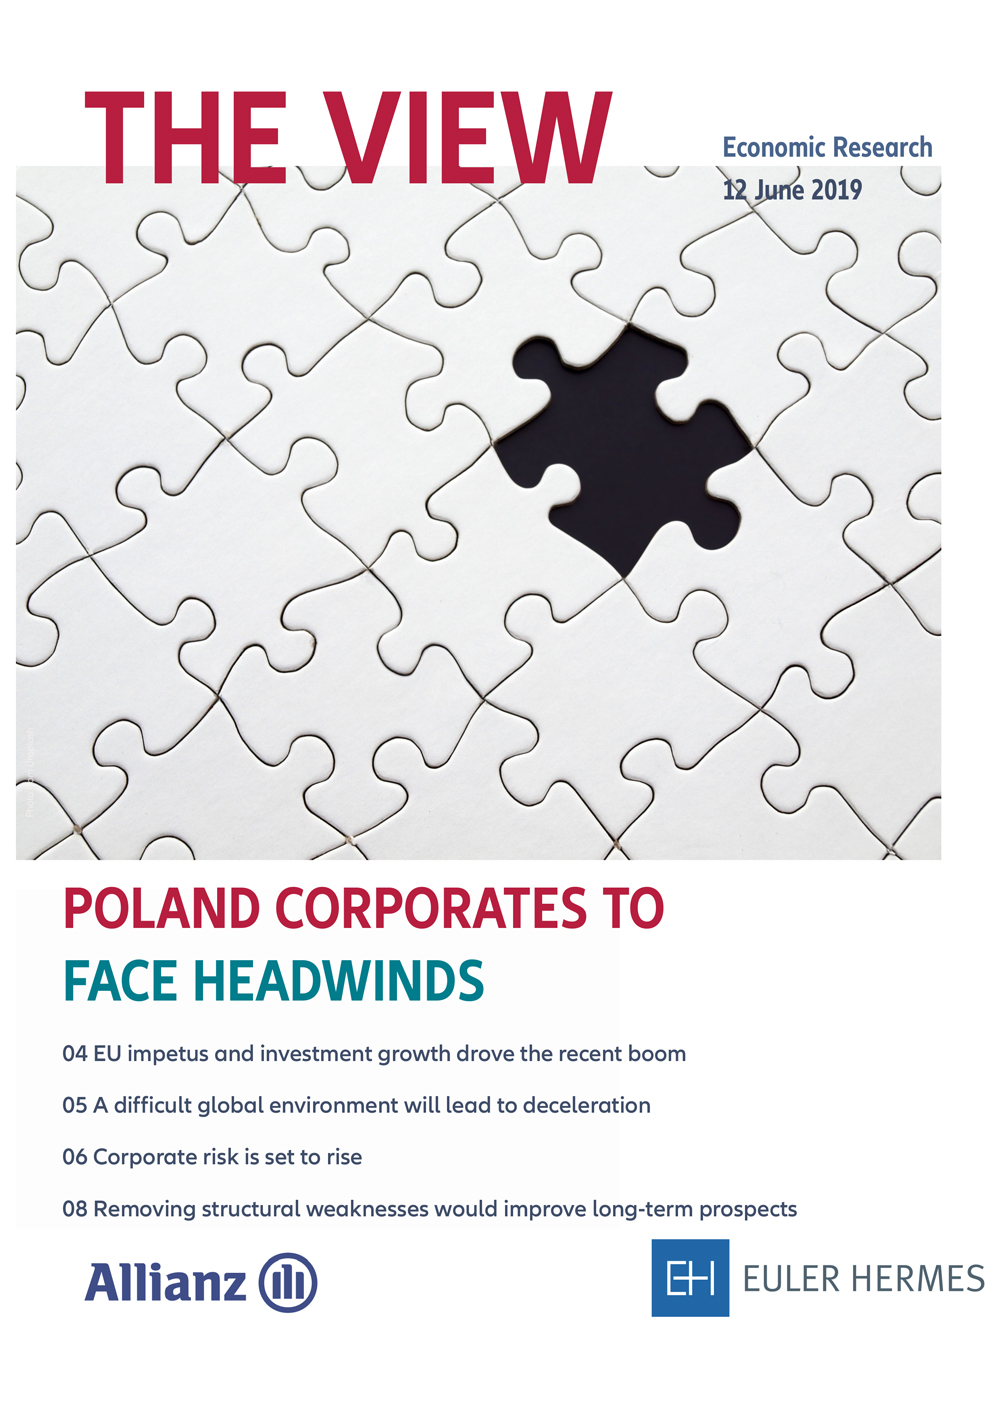 Poland corporates to face headwinds